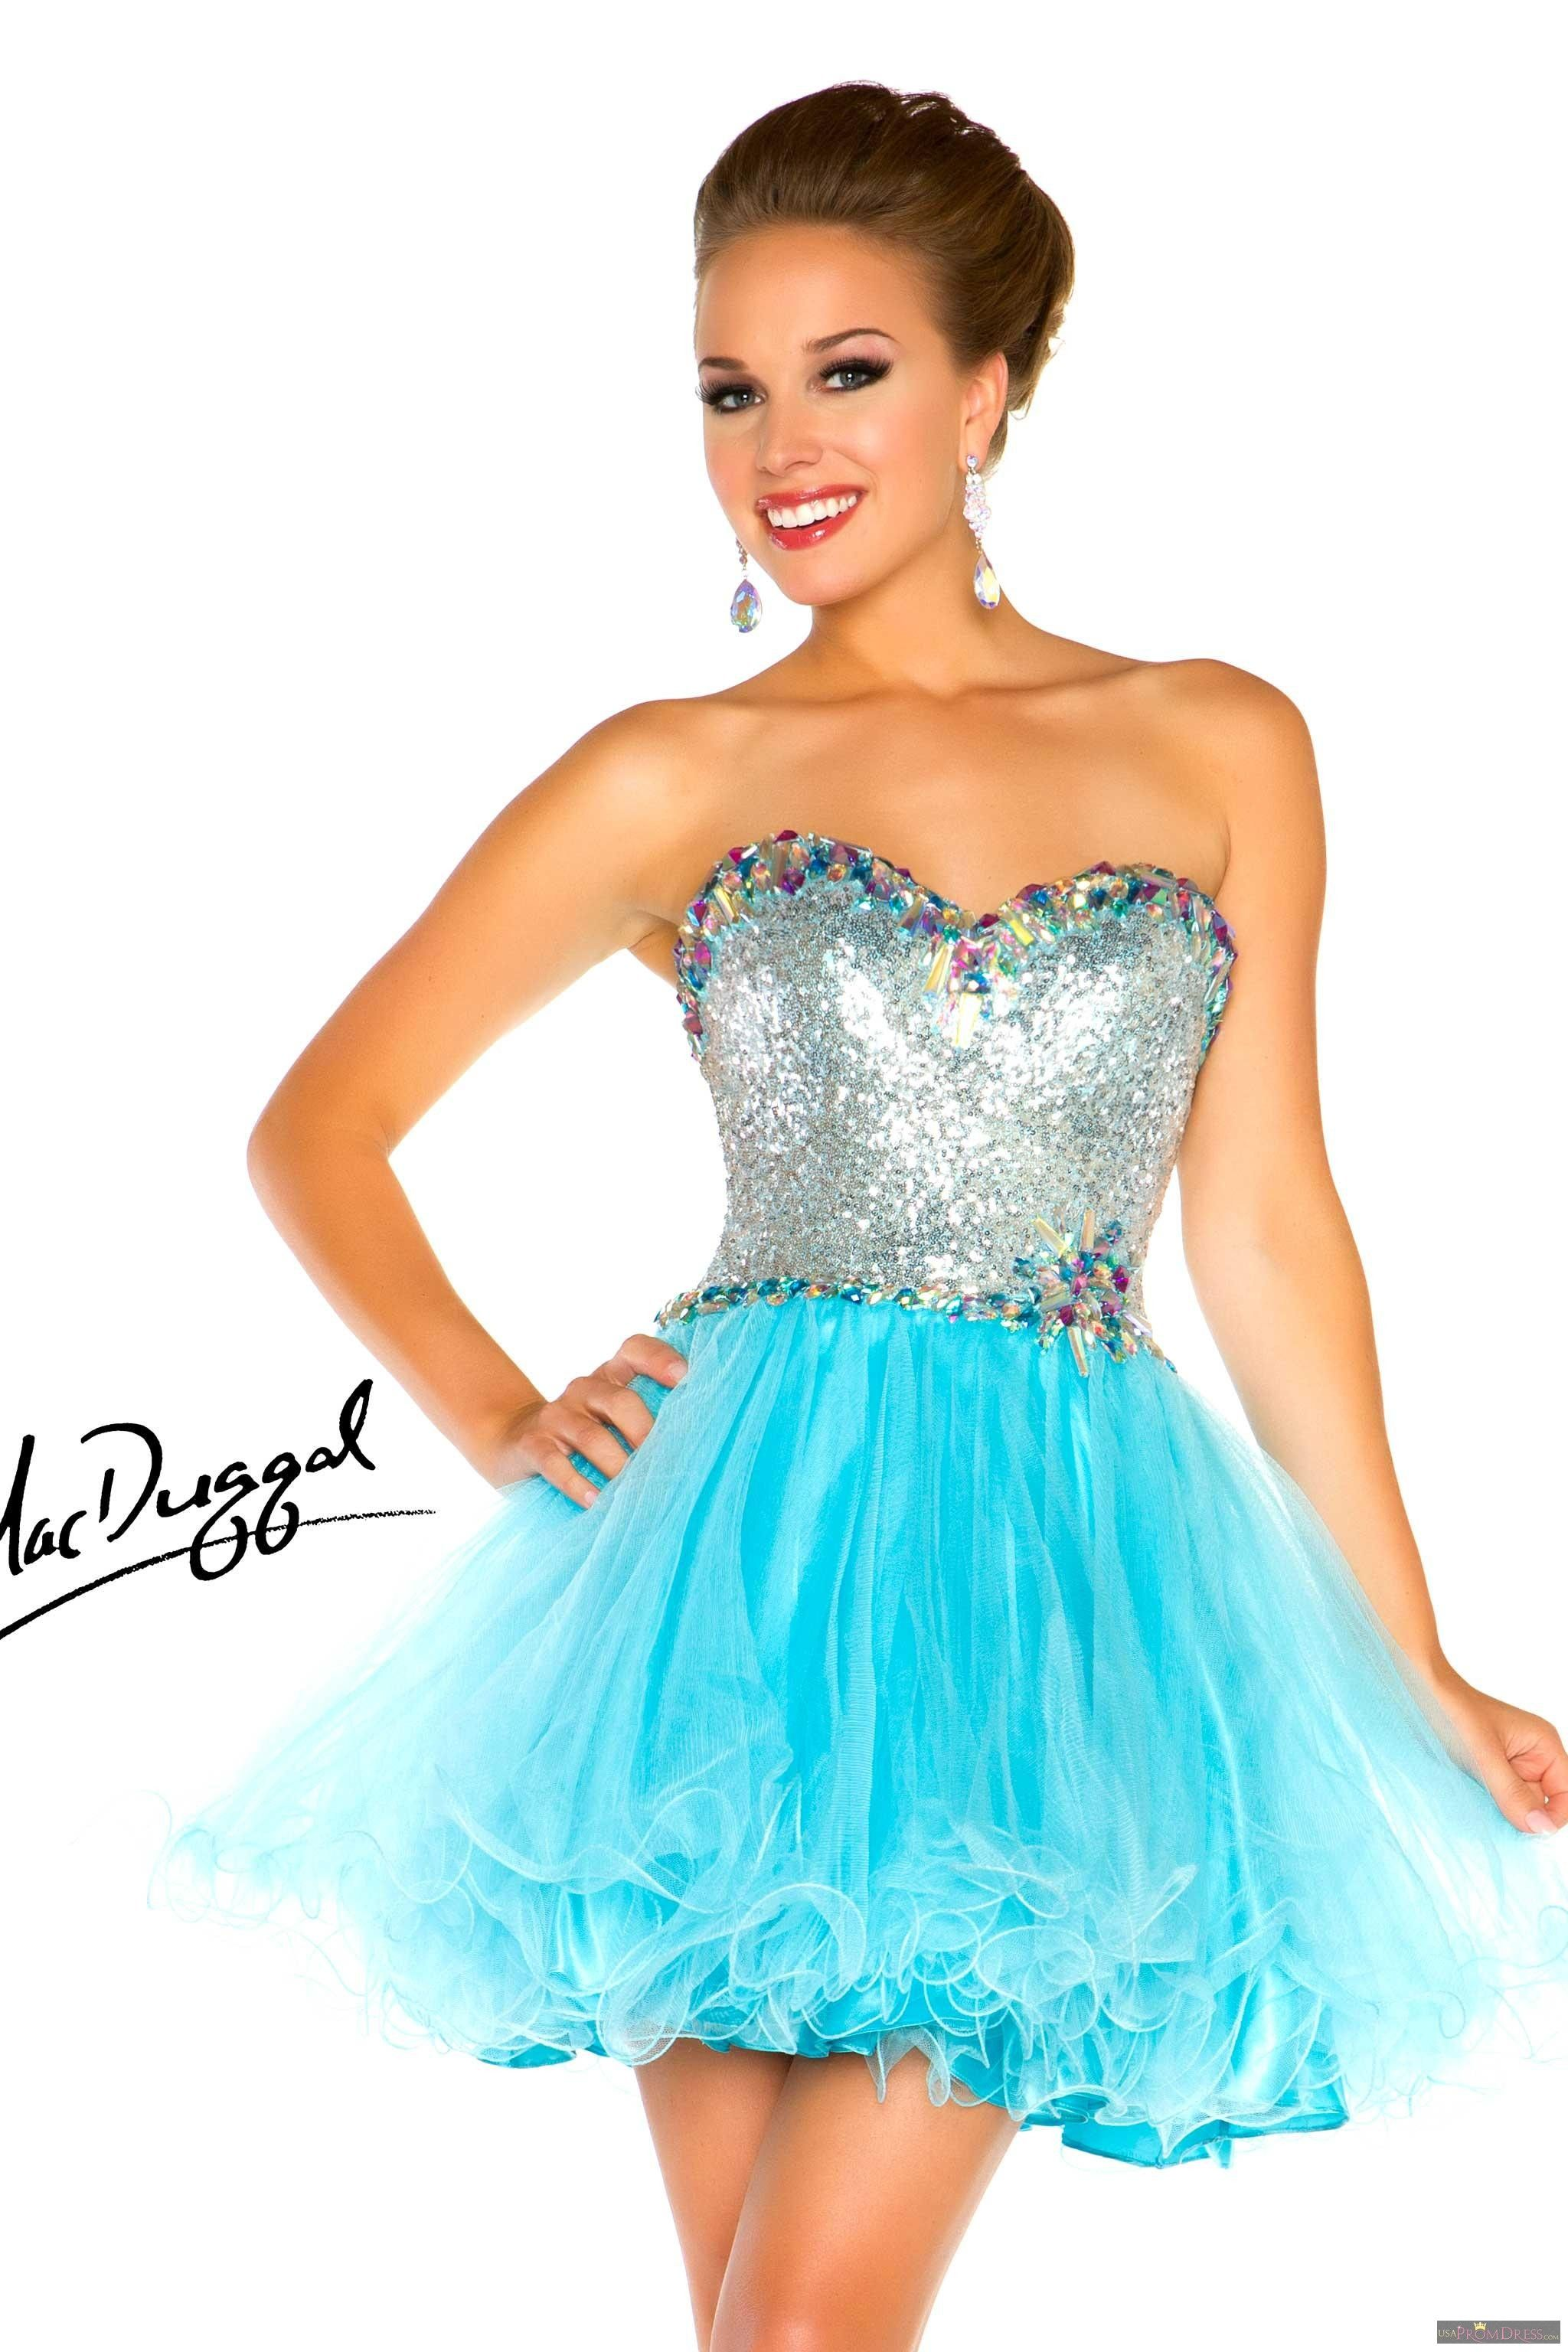 Mac duggal style n sassy in sequins when you wear this